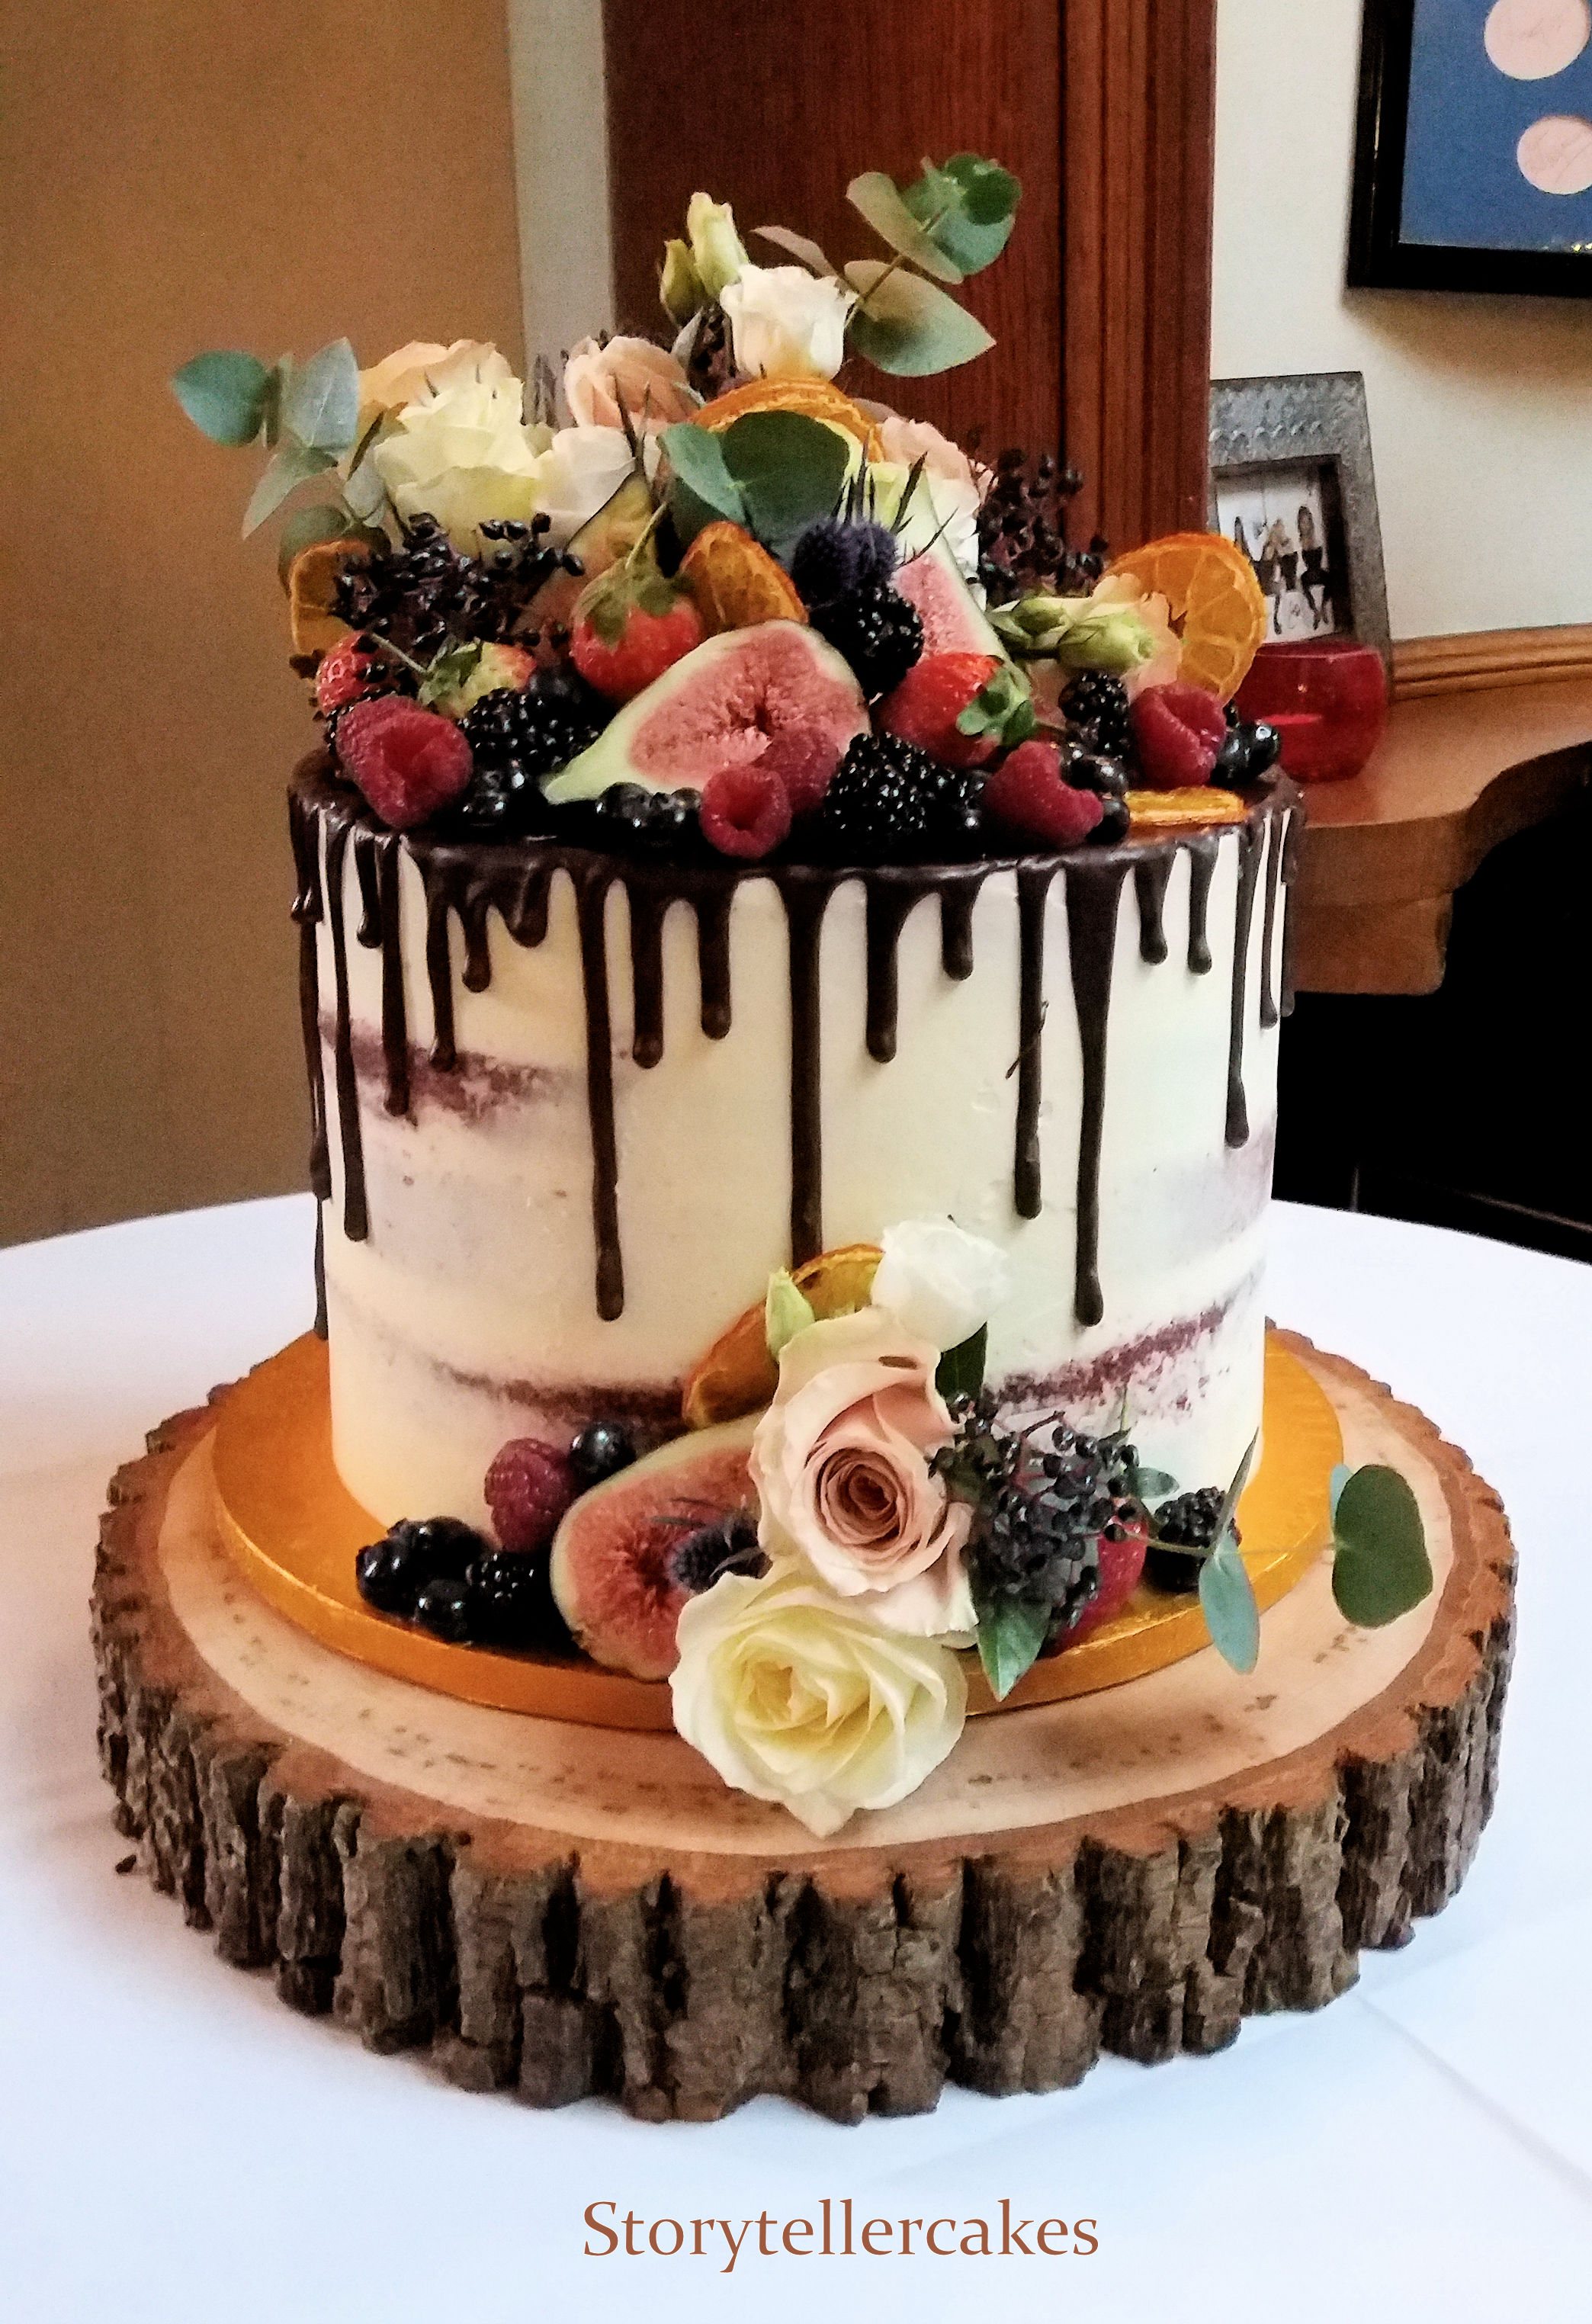 Naked   Buttercream Wedding Cakes     Storyteller Cakes Chocolate Drip   Fruit Wedding Cake jpg